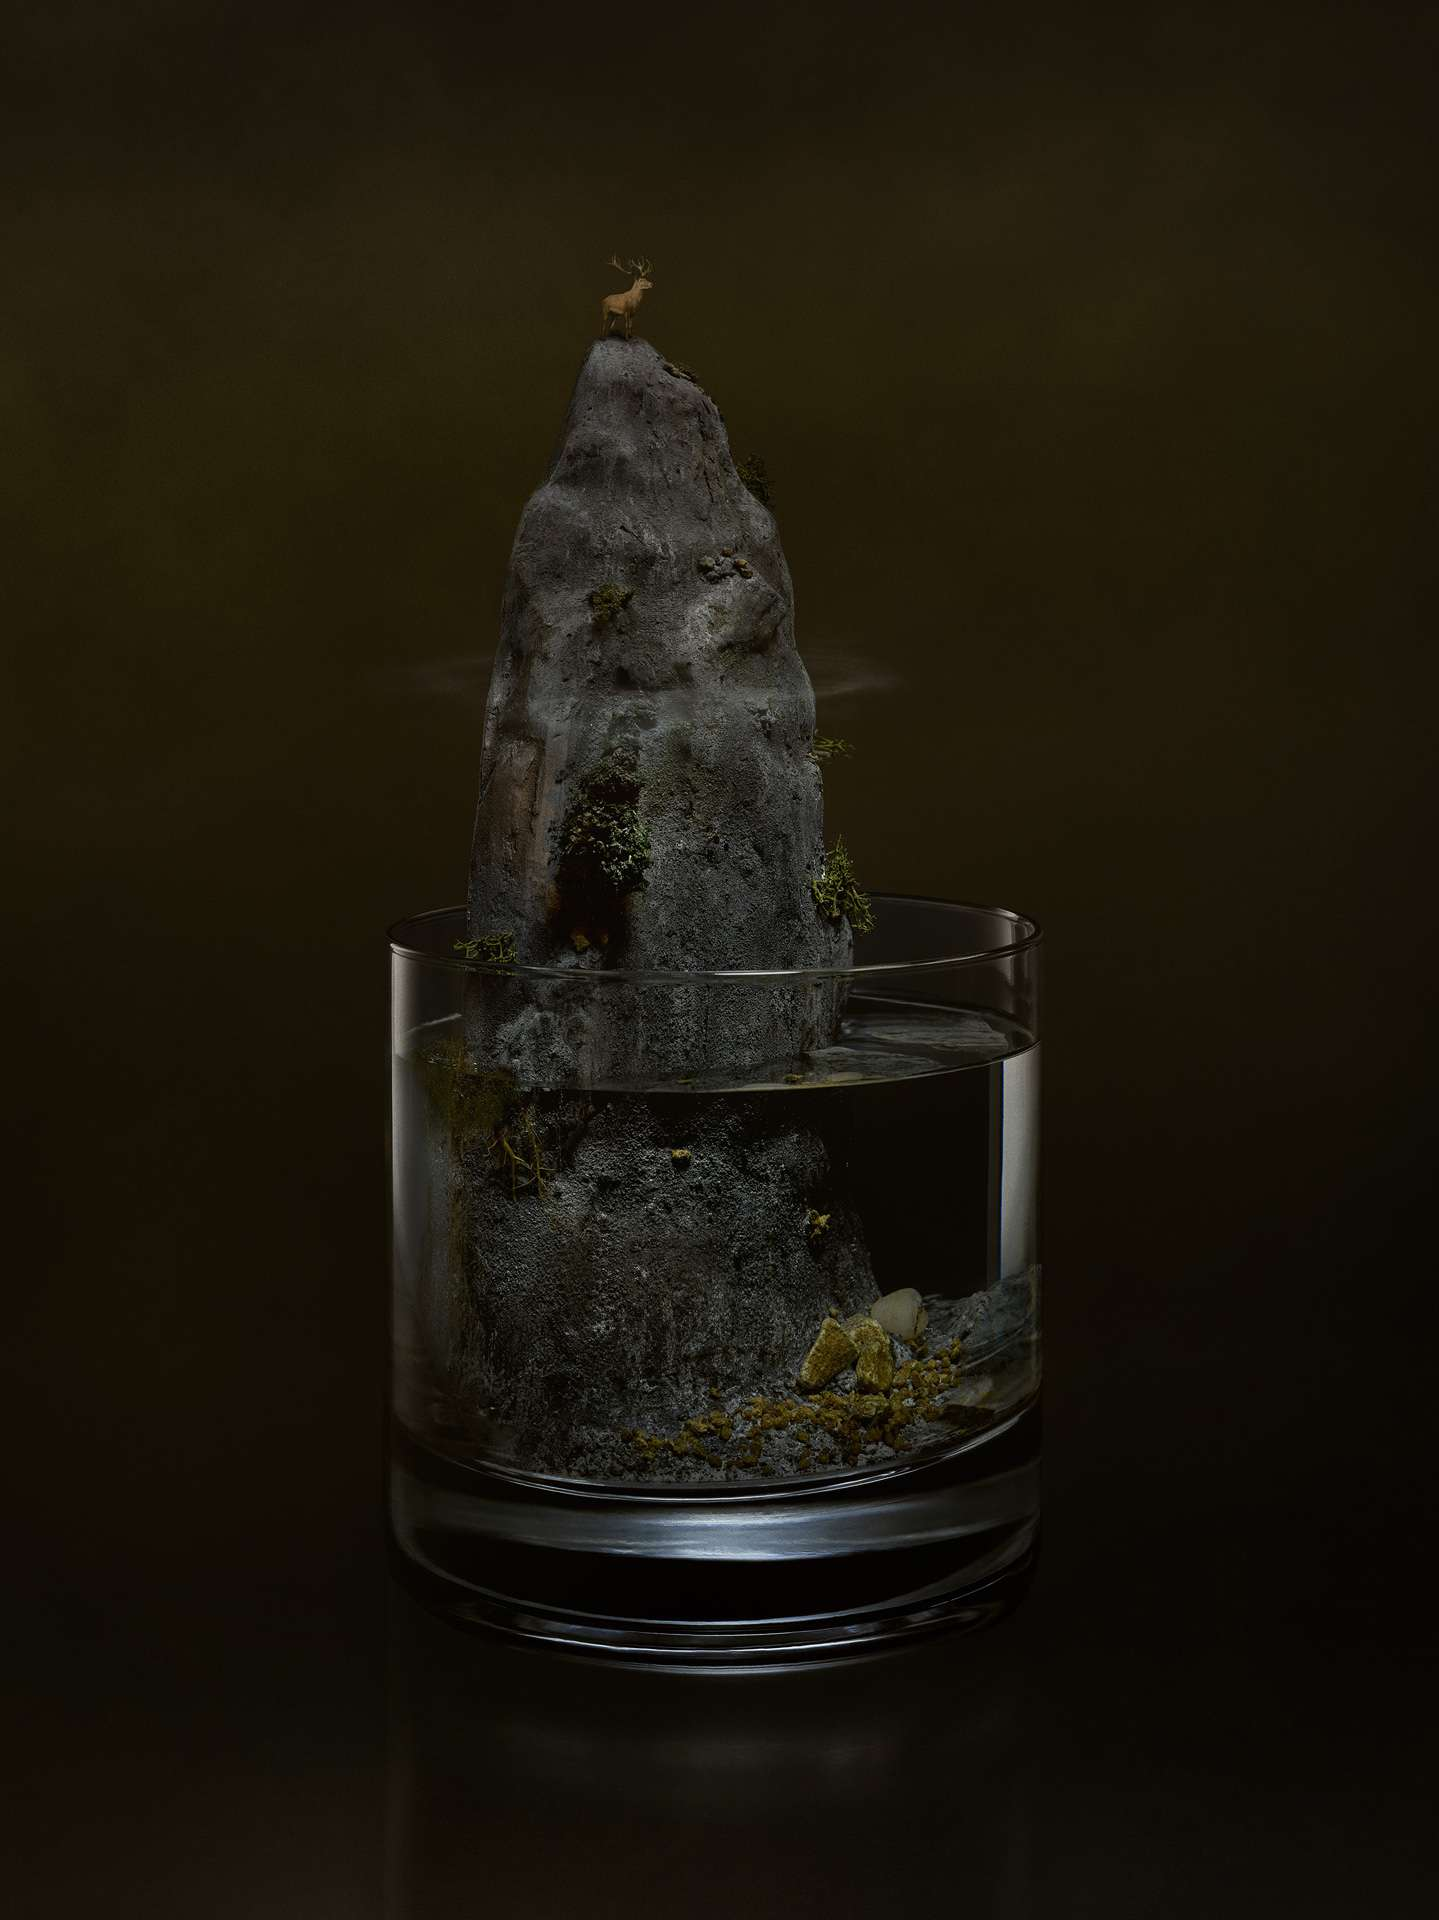 glass of alcohol with miniature scenery of tall grey rock with deer at the top on dark brown background by Mathieu Levesque